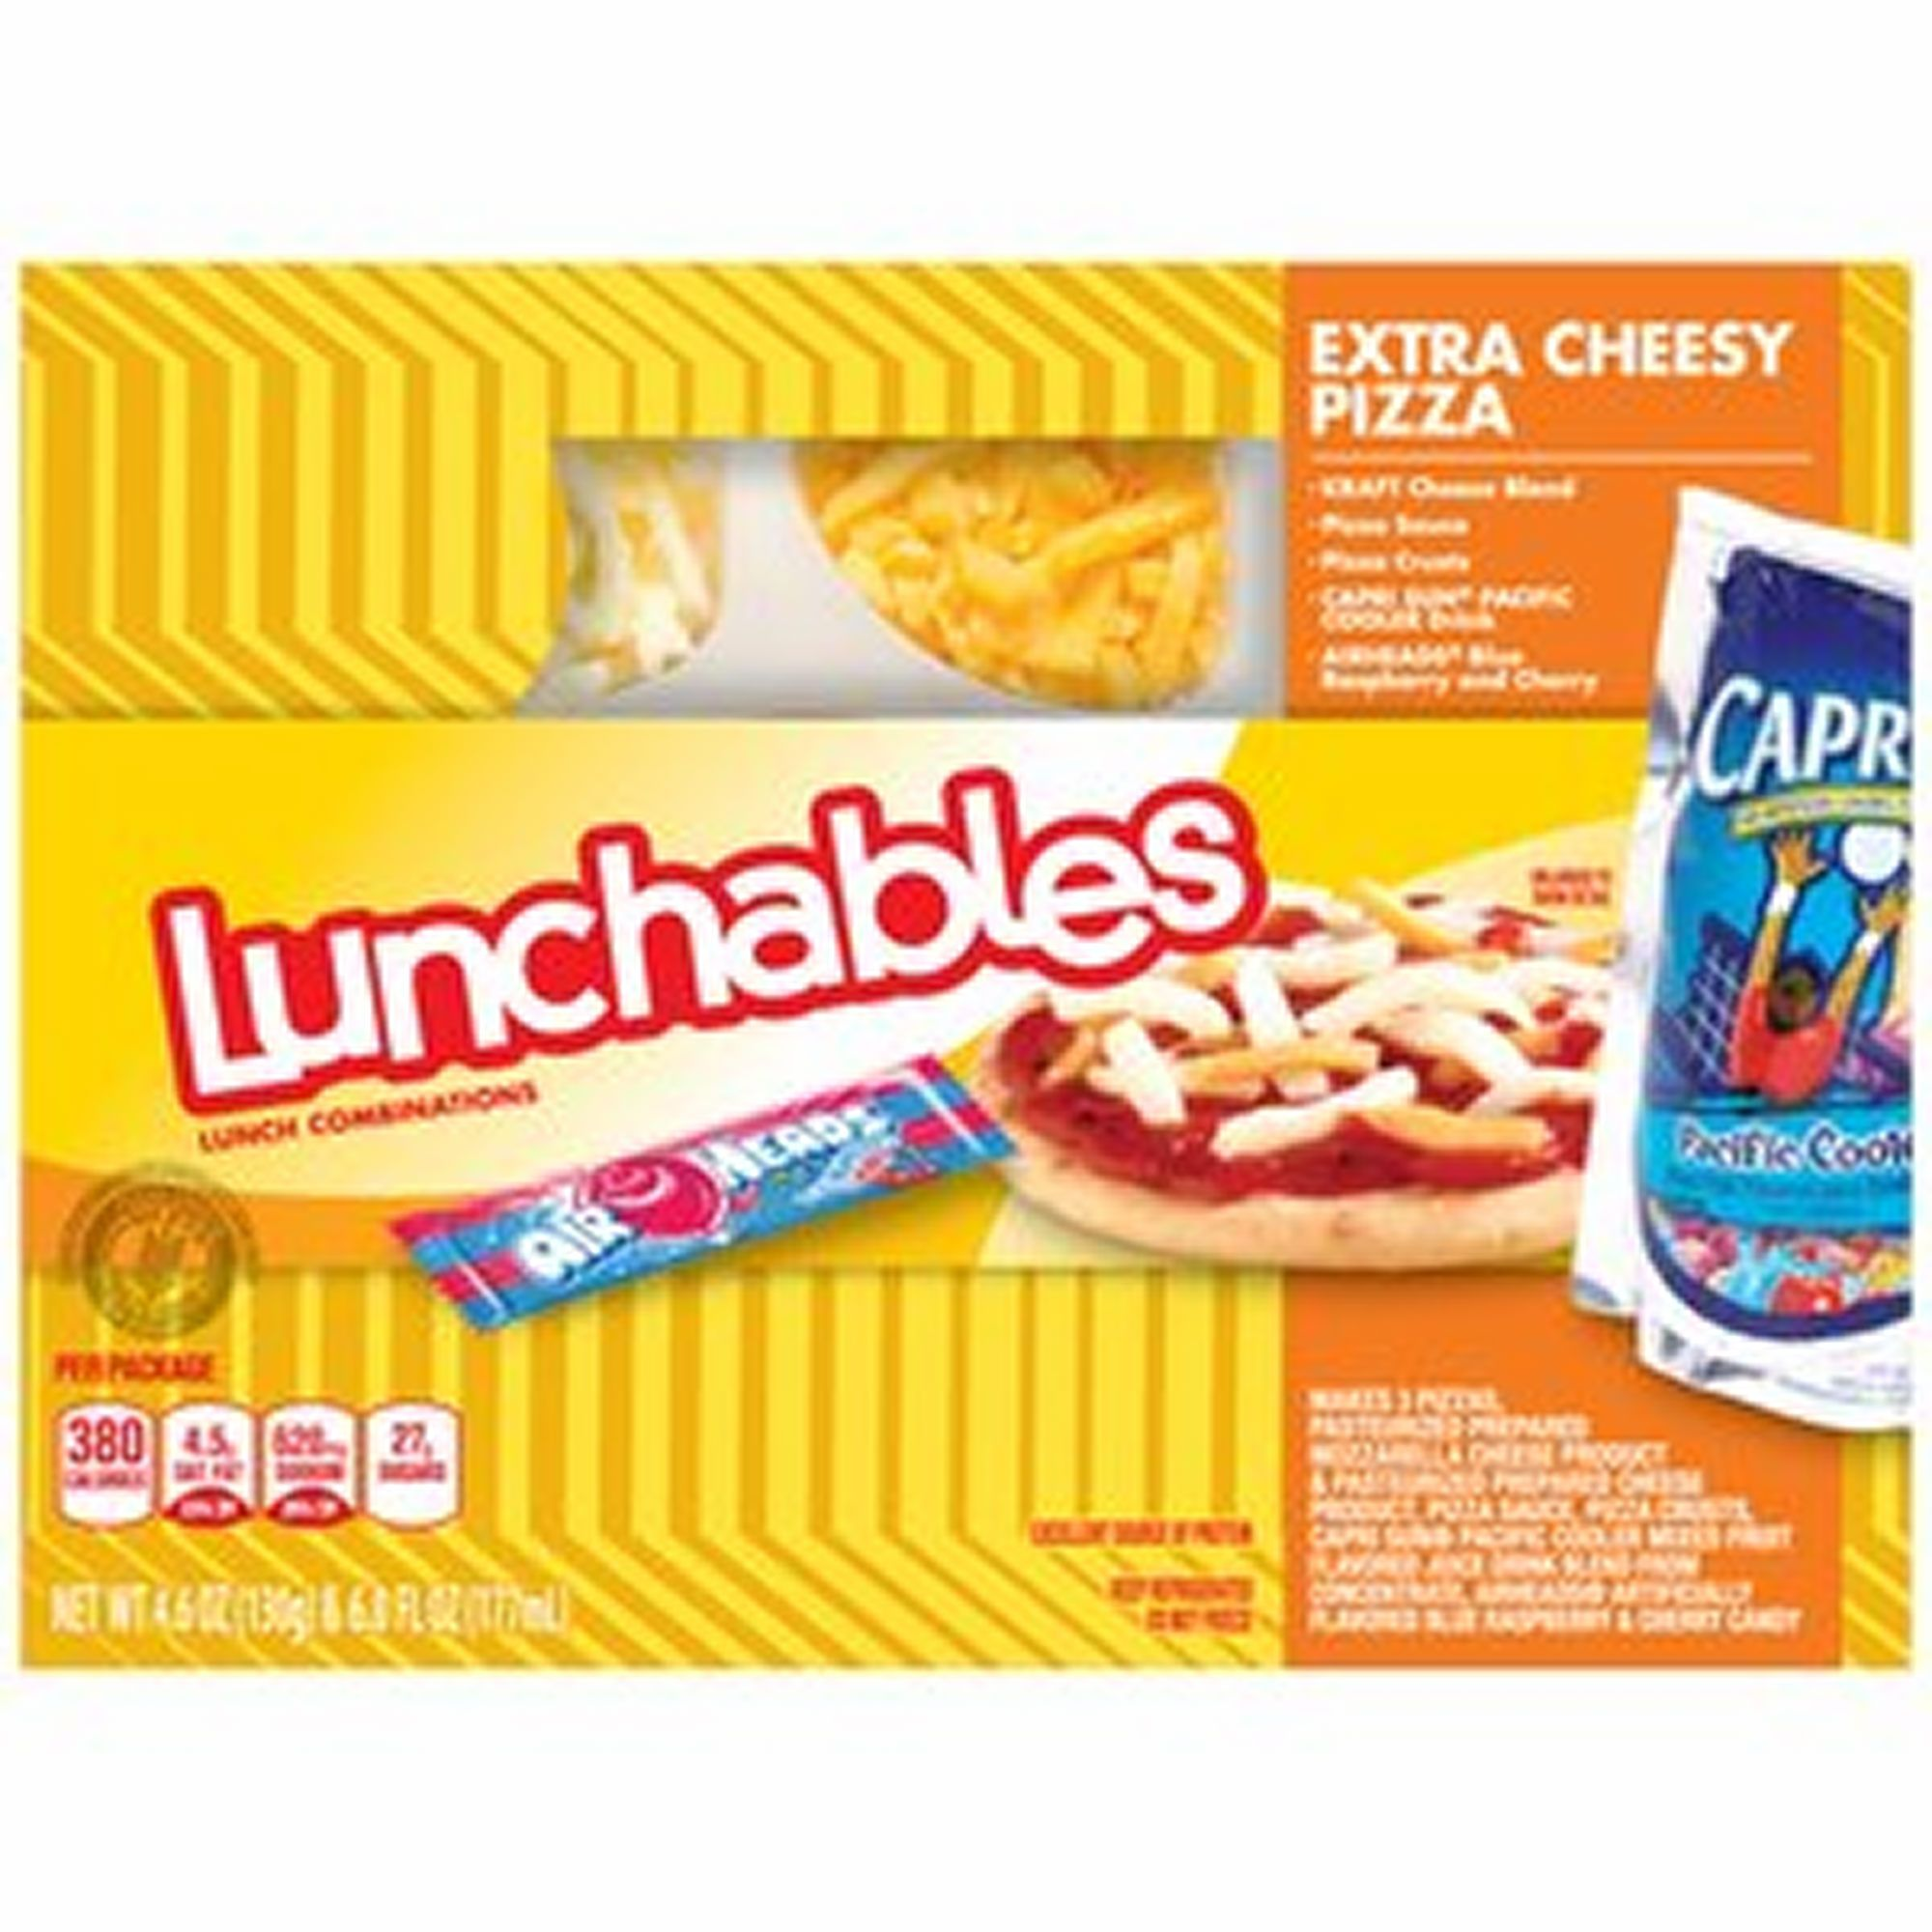 Lunchables also Oscar Mayer Lunchables Nacho Ch 1235 likewise Hillshire Farm Roast Beef also B00T5H1FC6 additionally 24666 Lunch Meat. on oscar mayer lunchables nachos